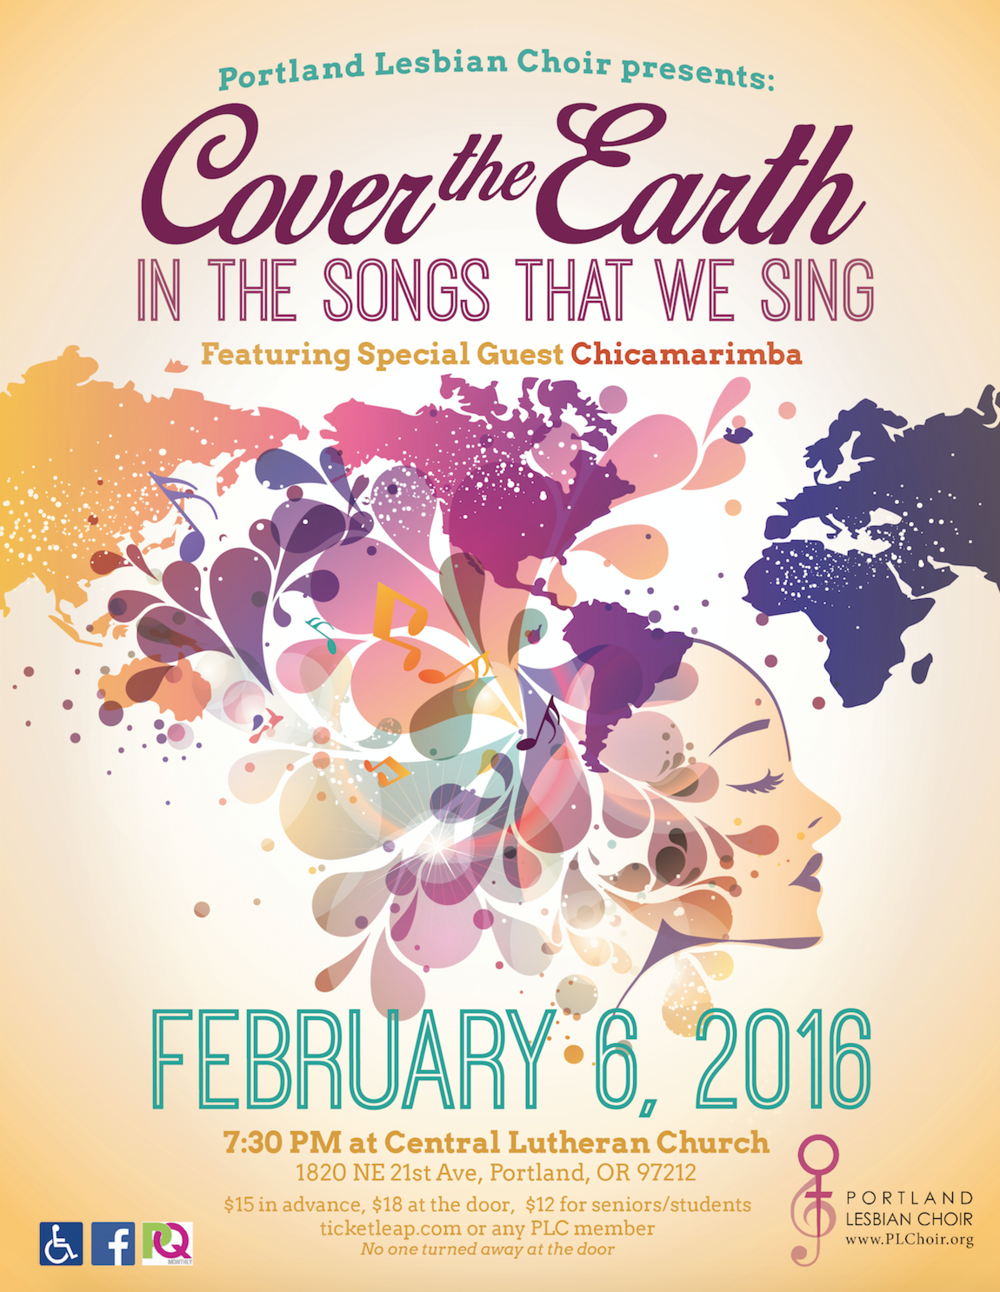 COVER THE EARTH - FEBRUARY 2016